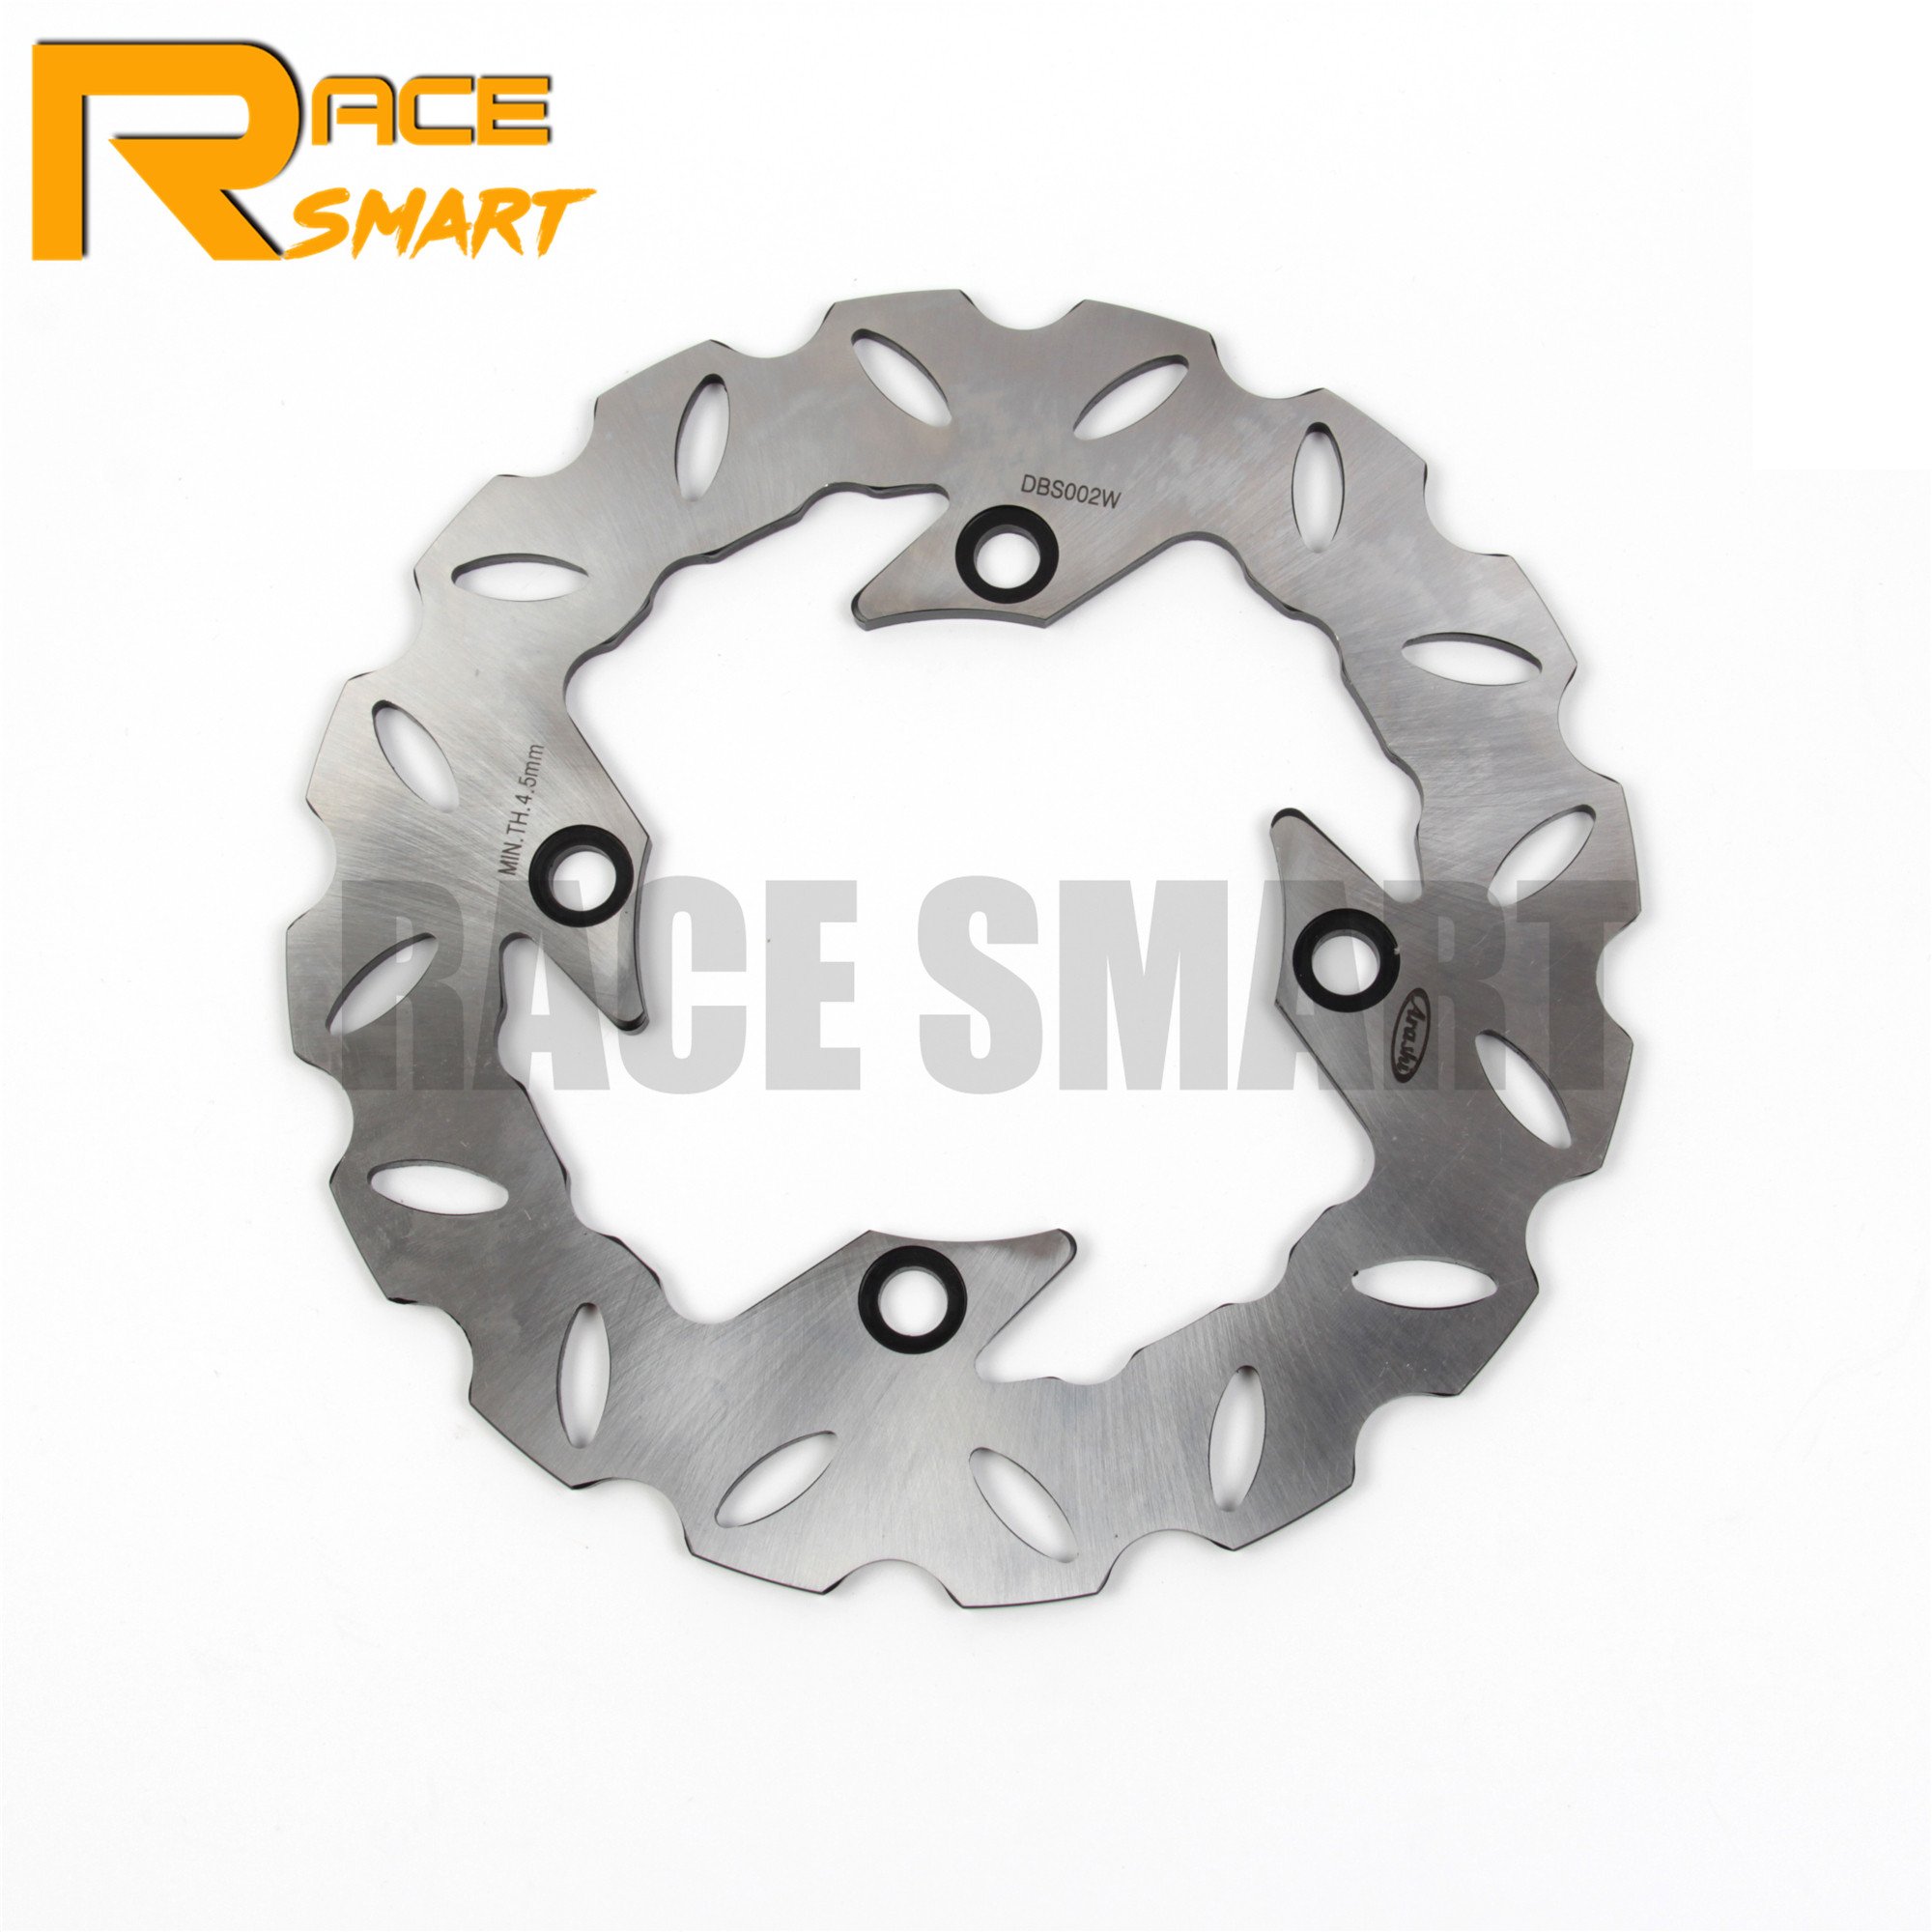 Motorcycle Rear Brake Discs For <font><b>HONDA</b></font> CB F <font><b>HORNET</b></font> <font><b>600</b></font> 1998 - 2003 Brake Disks Rotors CBF600 CB600F <font><b>HORNET</b></font> 1999 2000 <font><b>2001</b></font> 2002 image